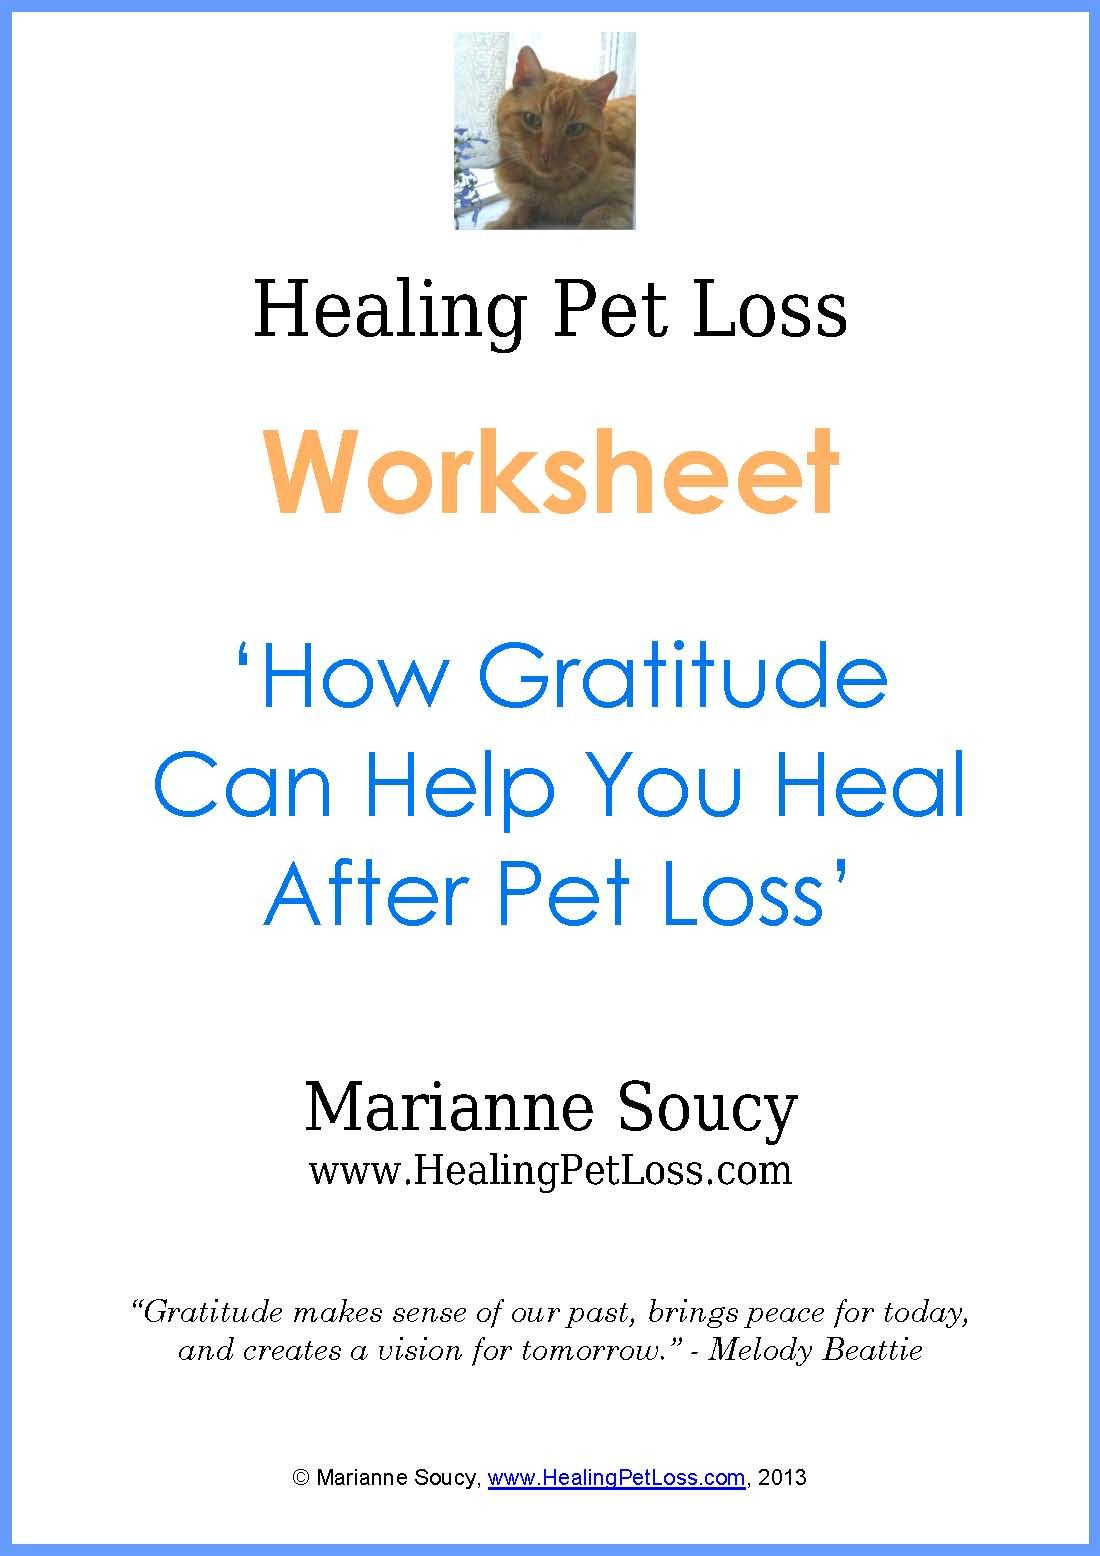 worksheet Gratitude Worksheet free download gratitude worksheet how can help you heal after pet loss